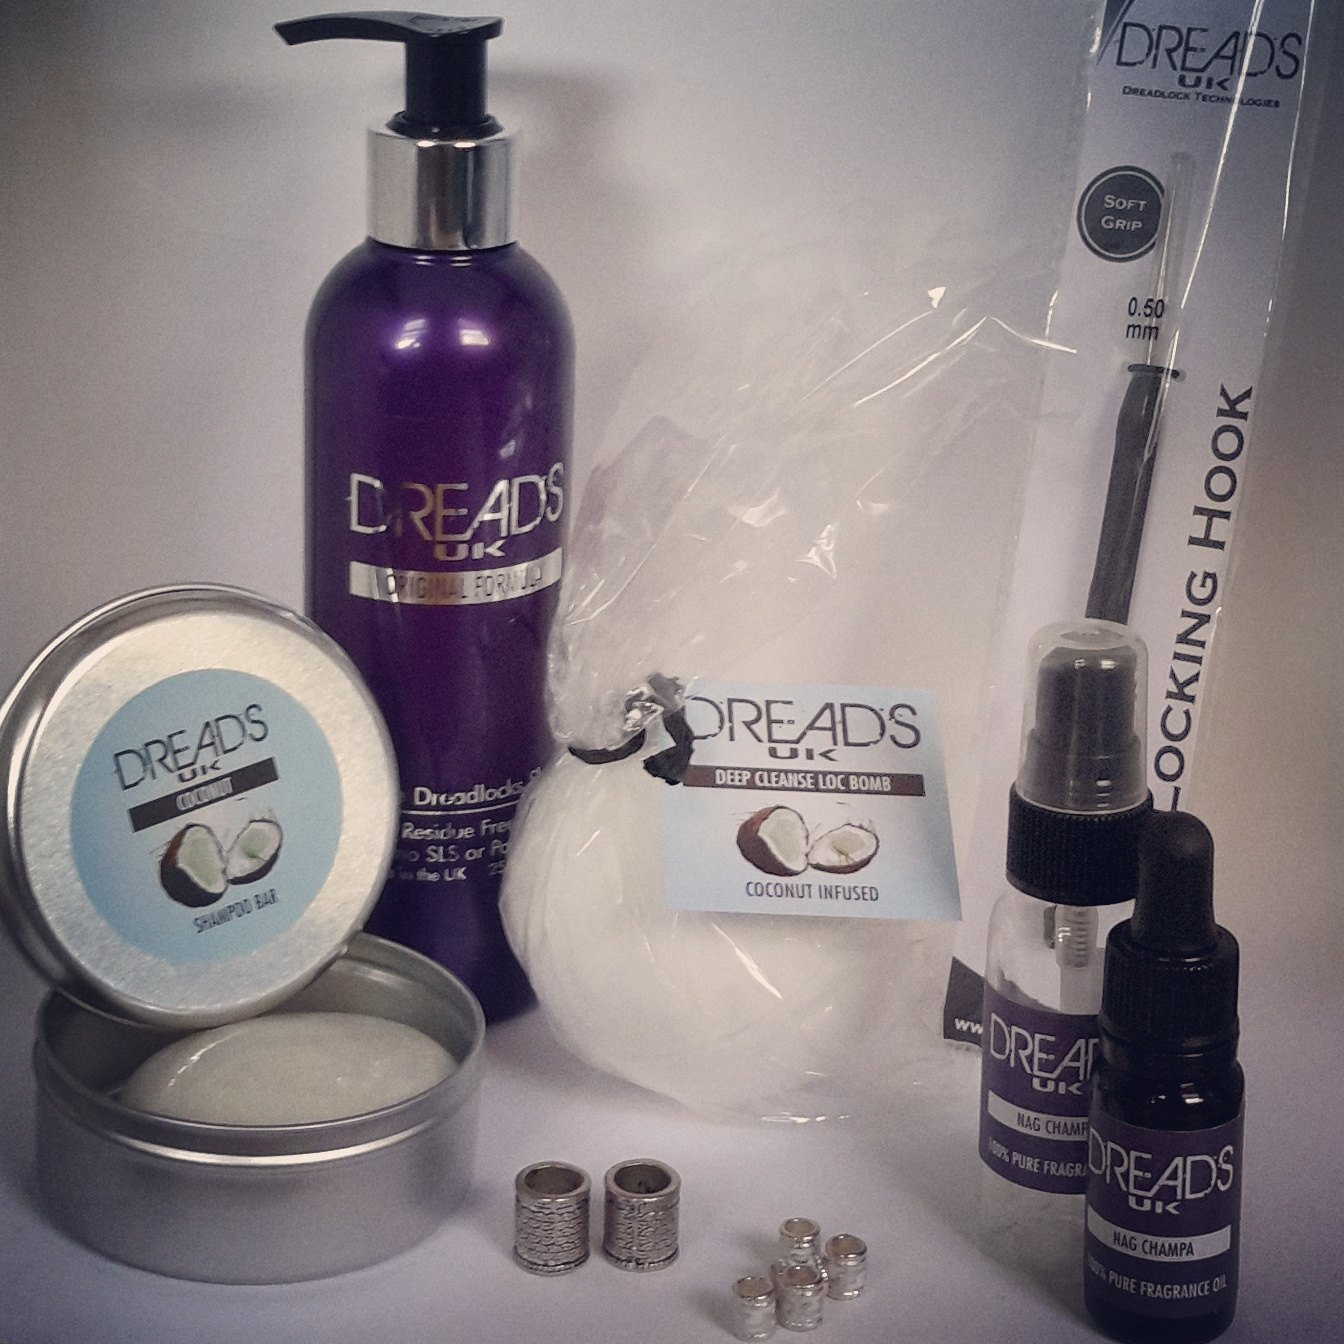 Dreads uk products